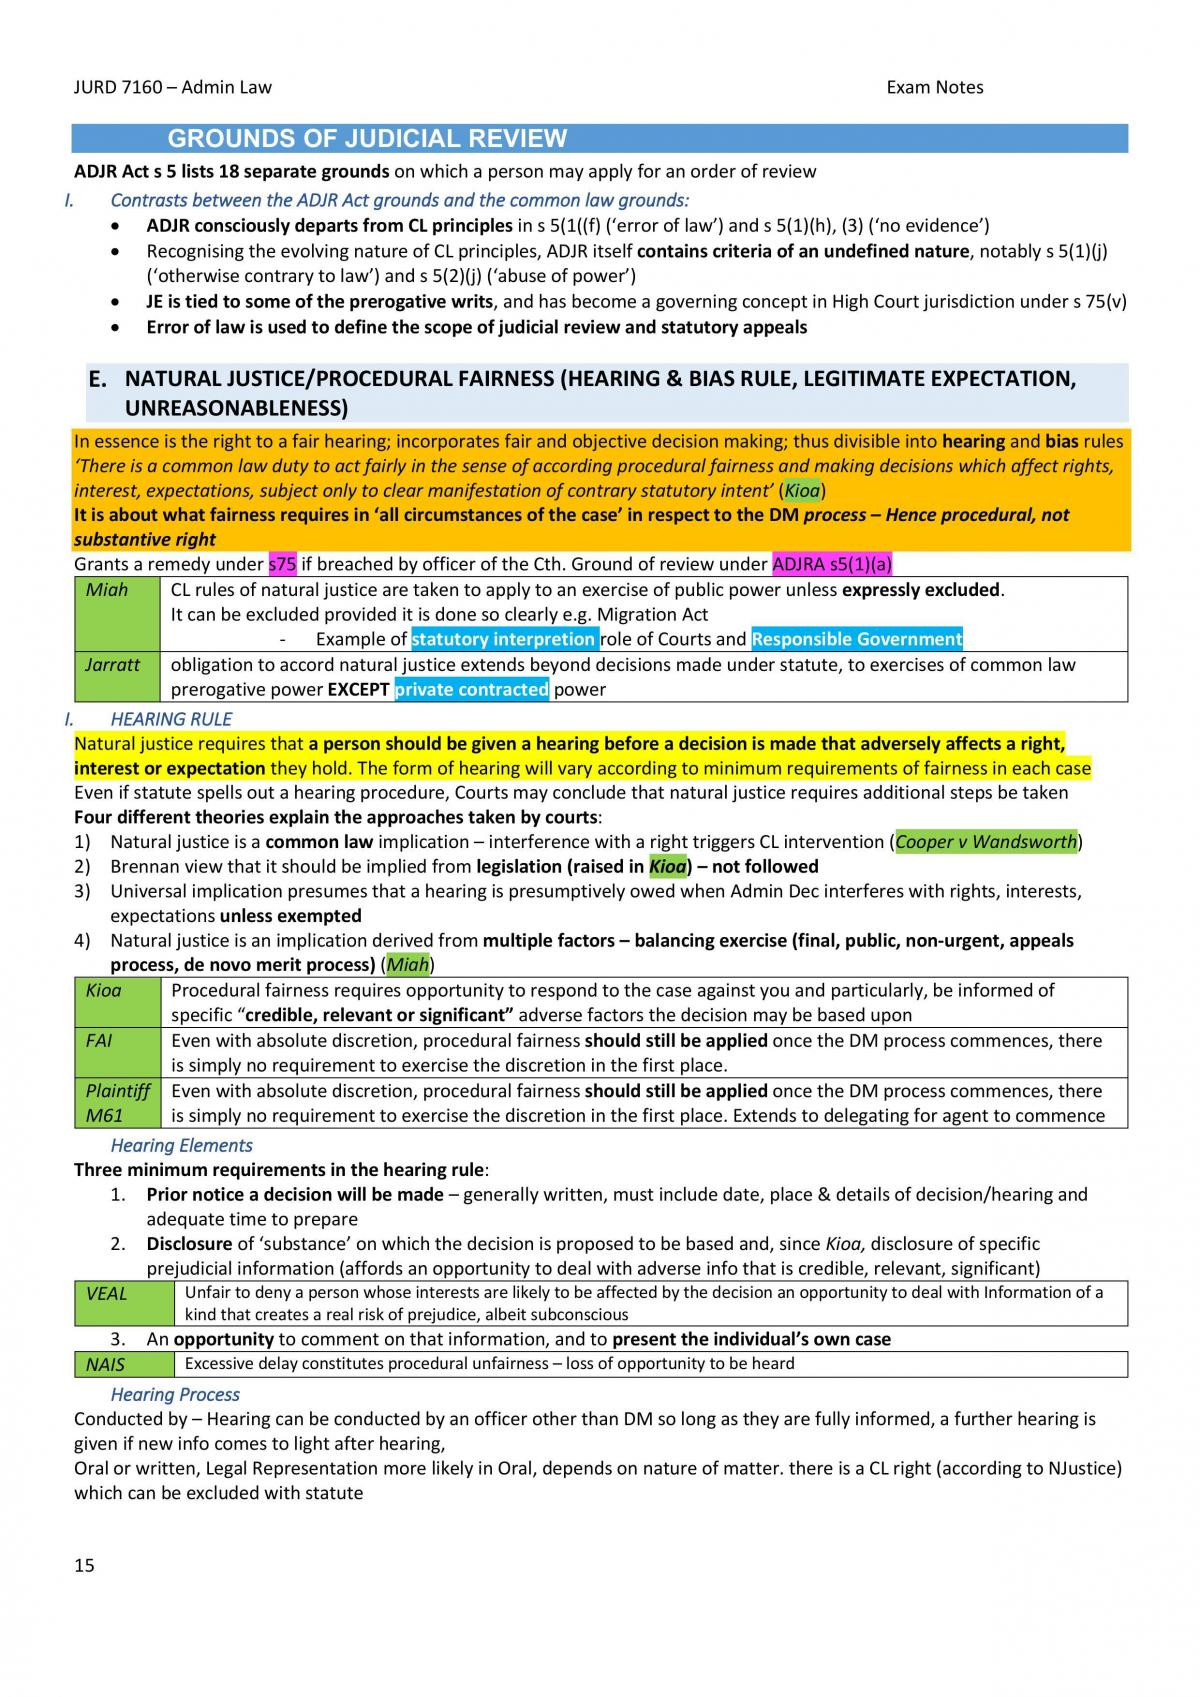 Full, Condensed Administrative Law Exam Notes - JURD7160 (S2, 2018) - Page 15